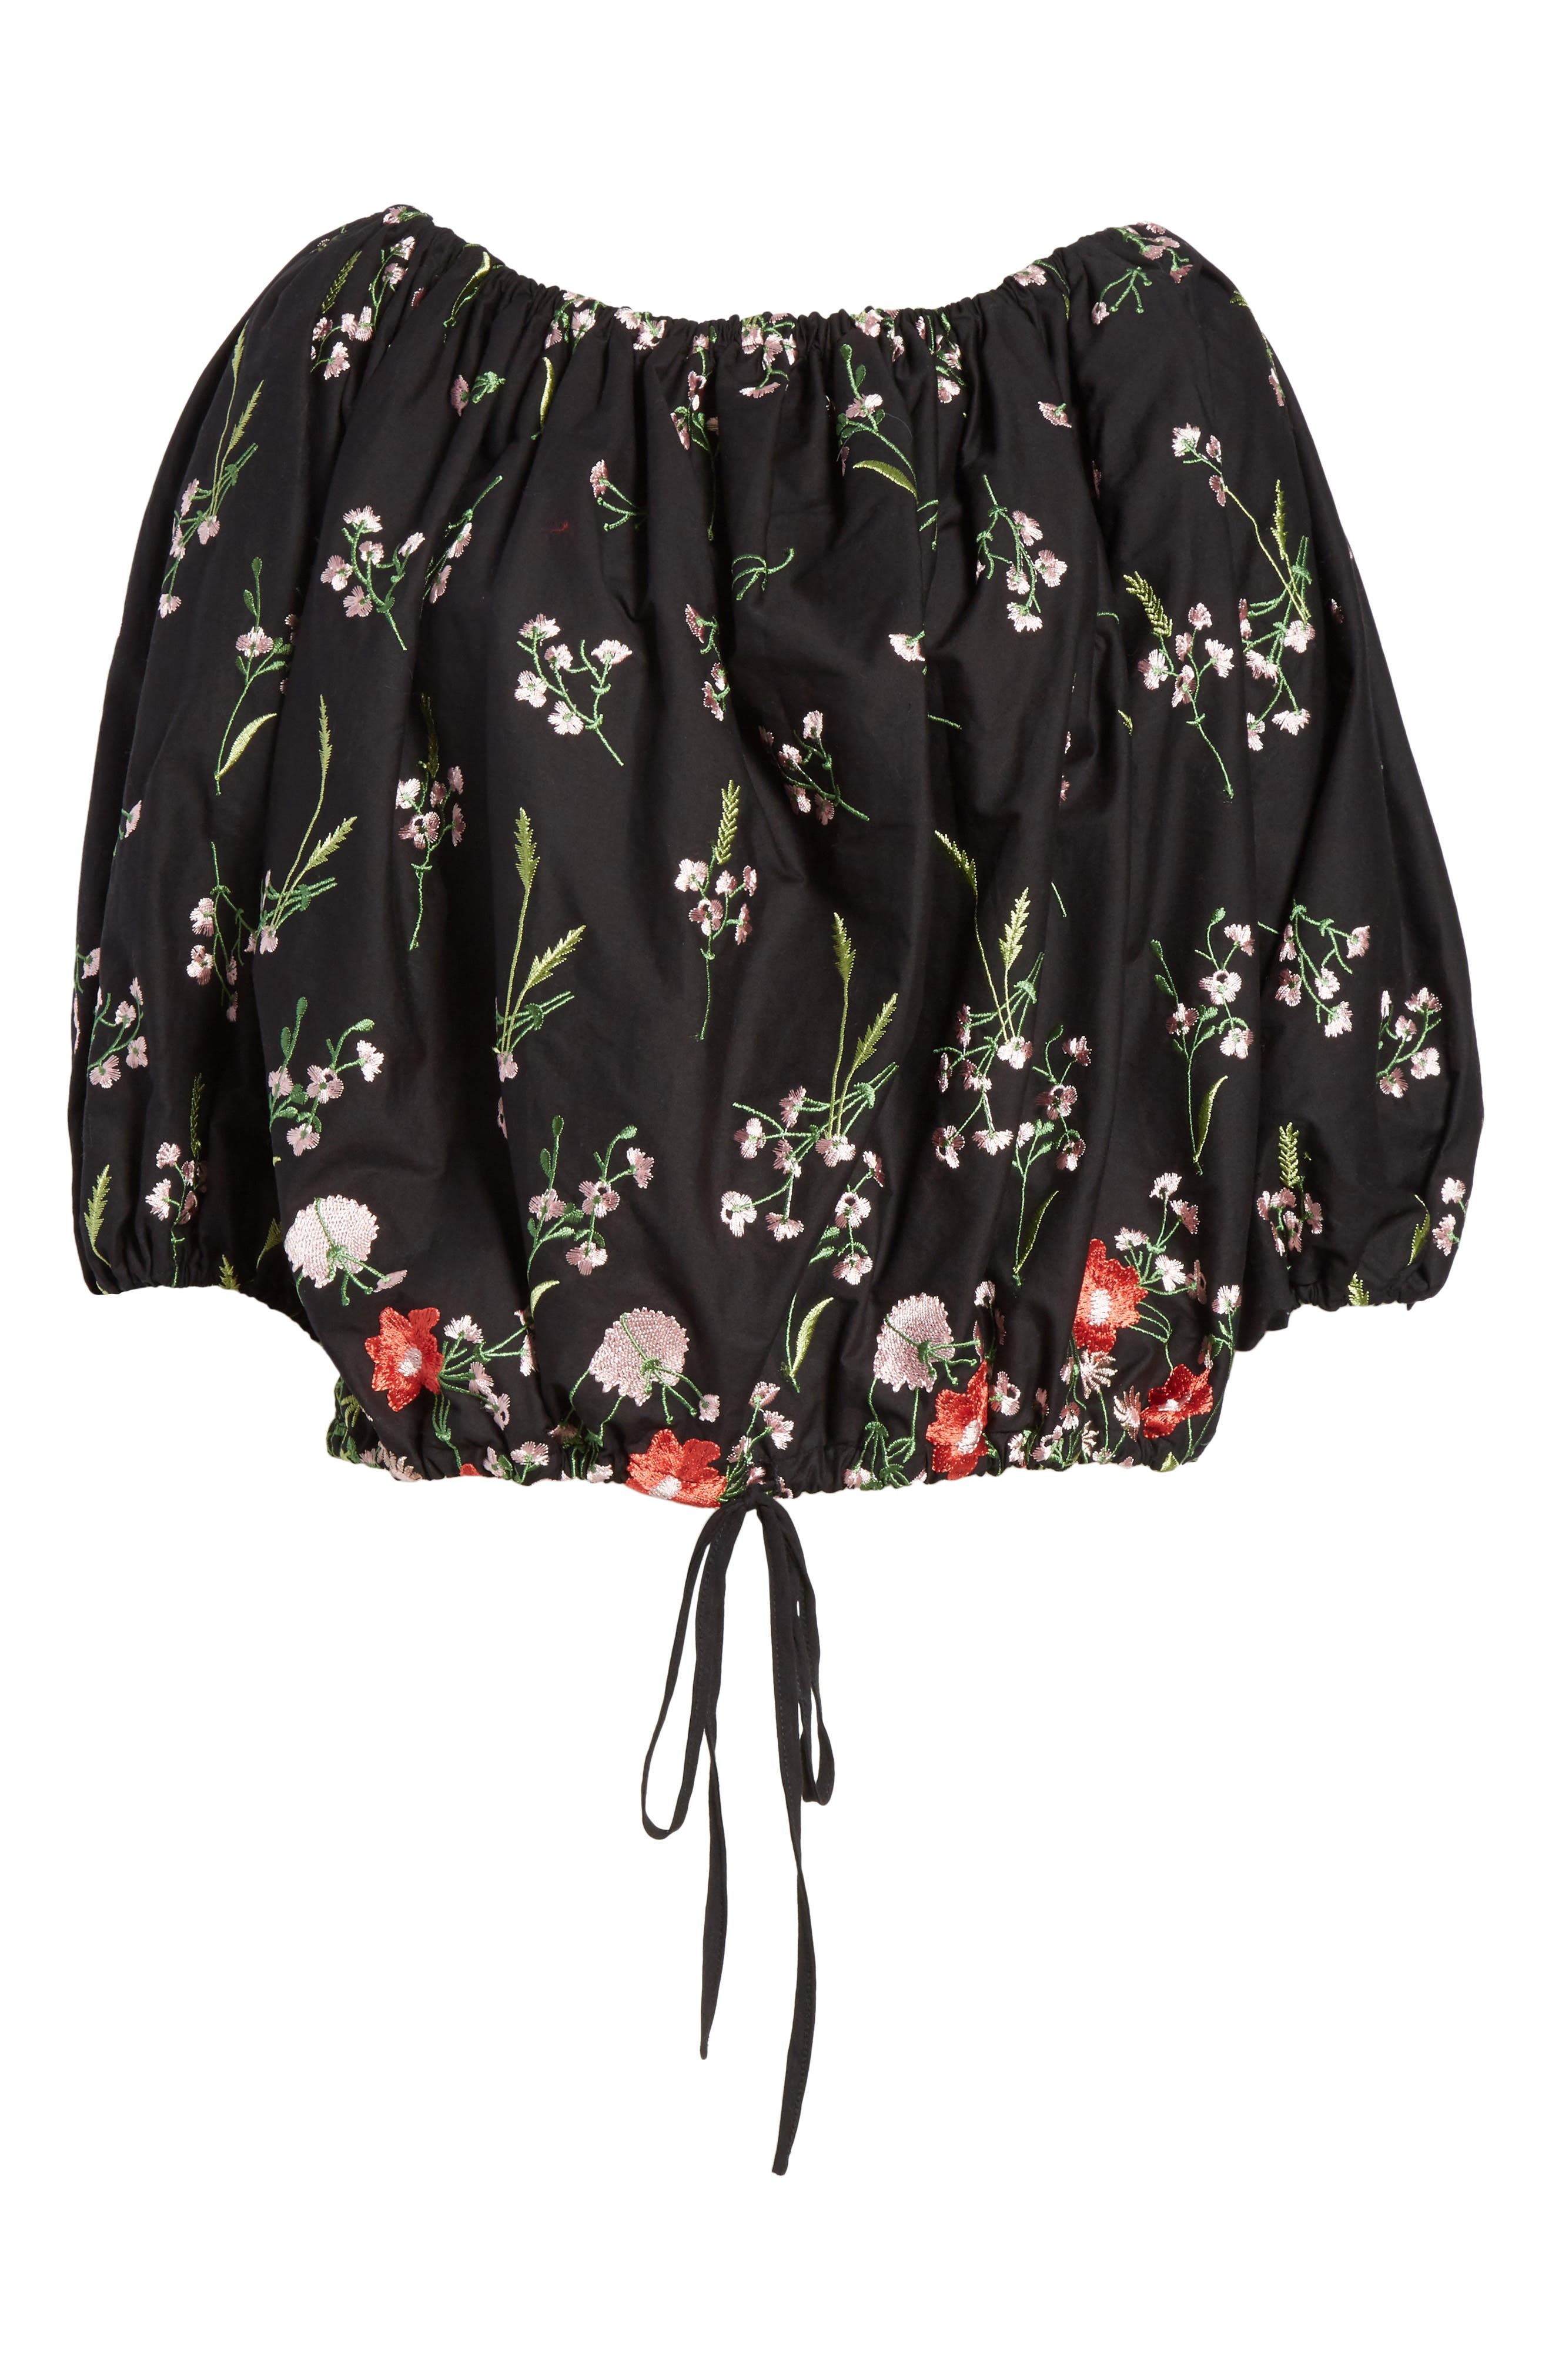 Marques'Almeida Embroidered Off the Shoulder Top,                             Alternate thumbnail 6, color,                             Black/Multi